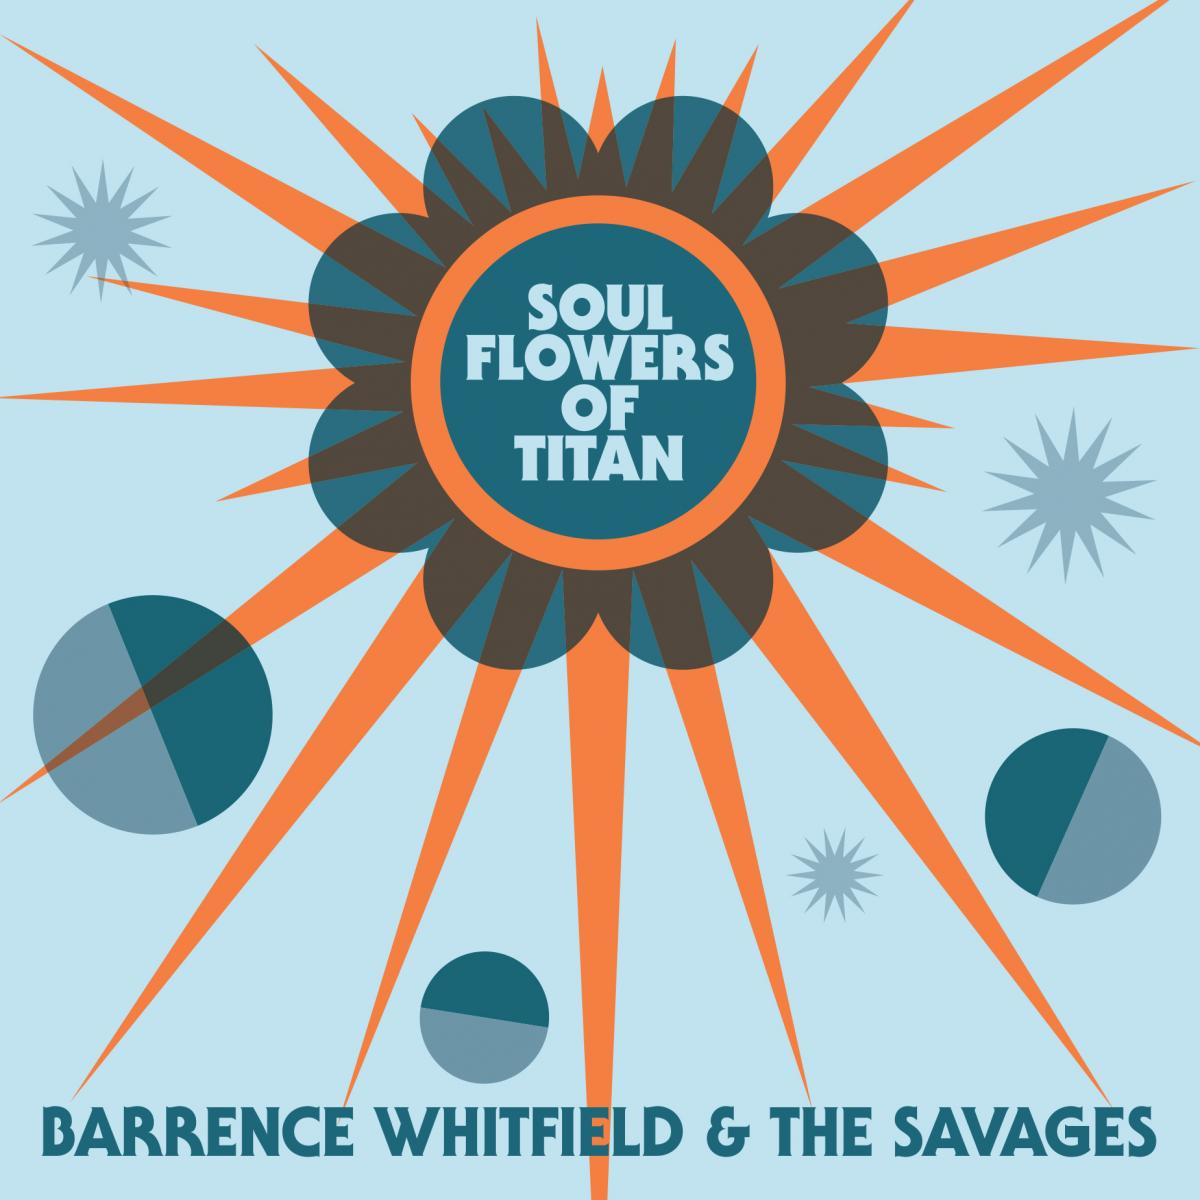 Barrence Whitfield and the Savages Soul Flowers of Titan